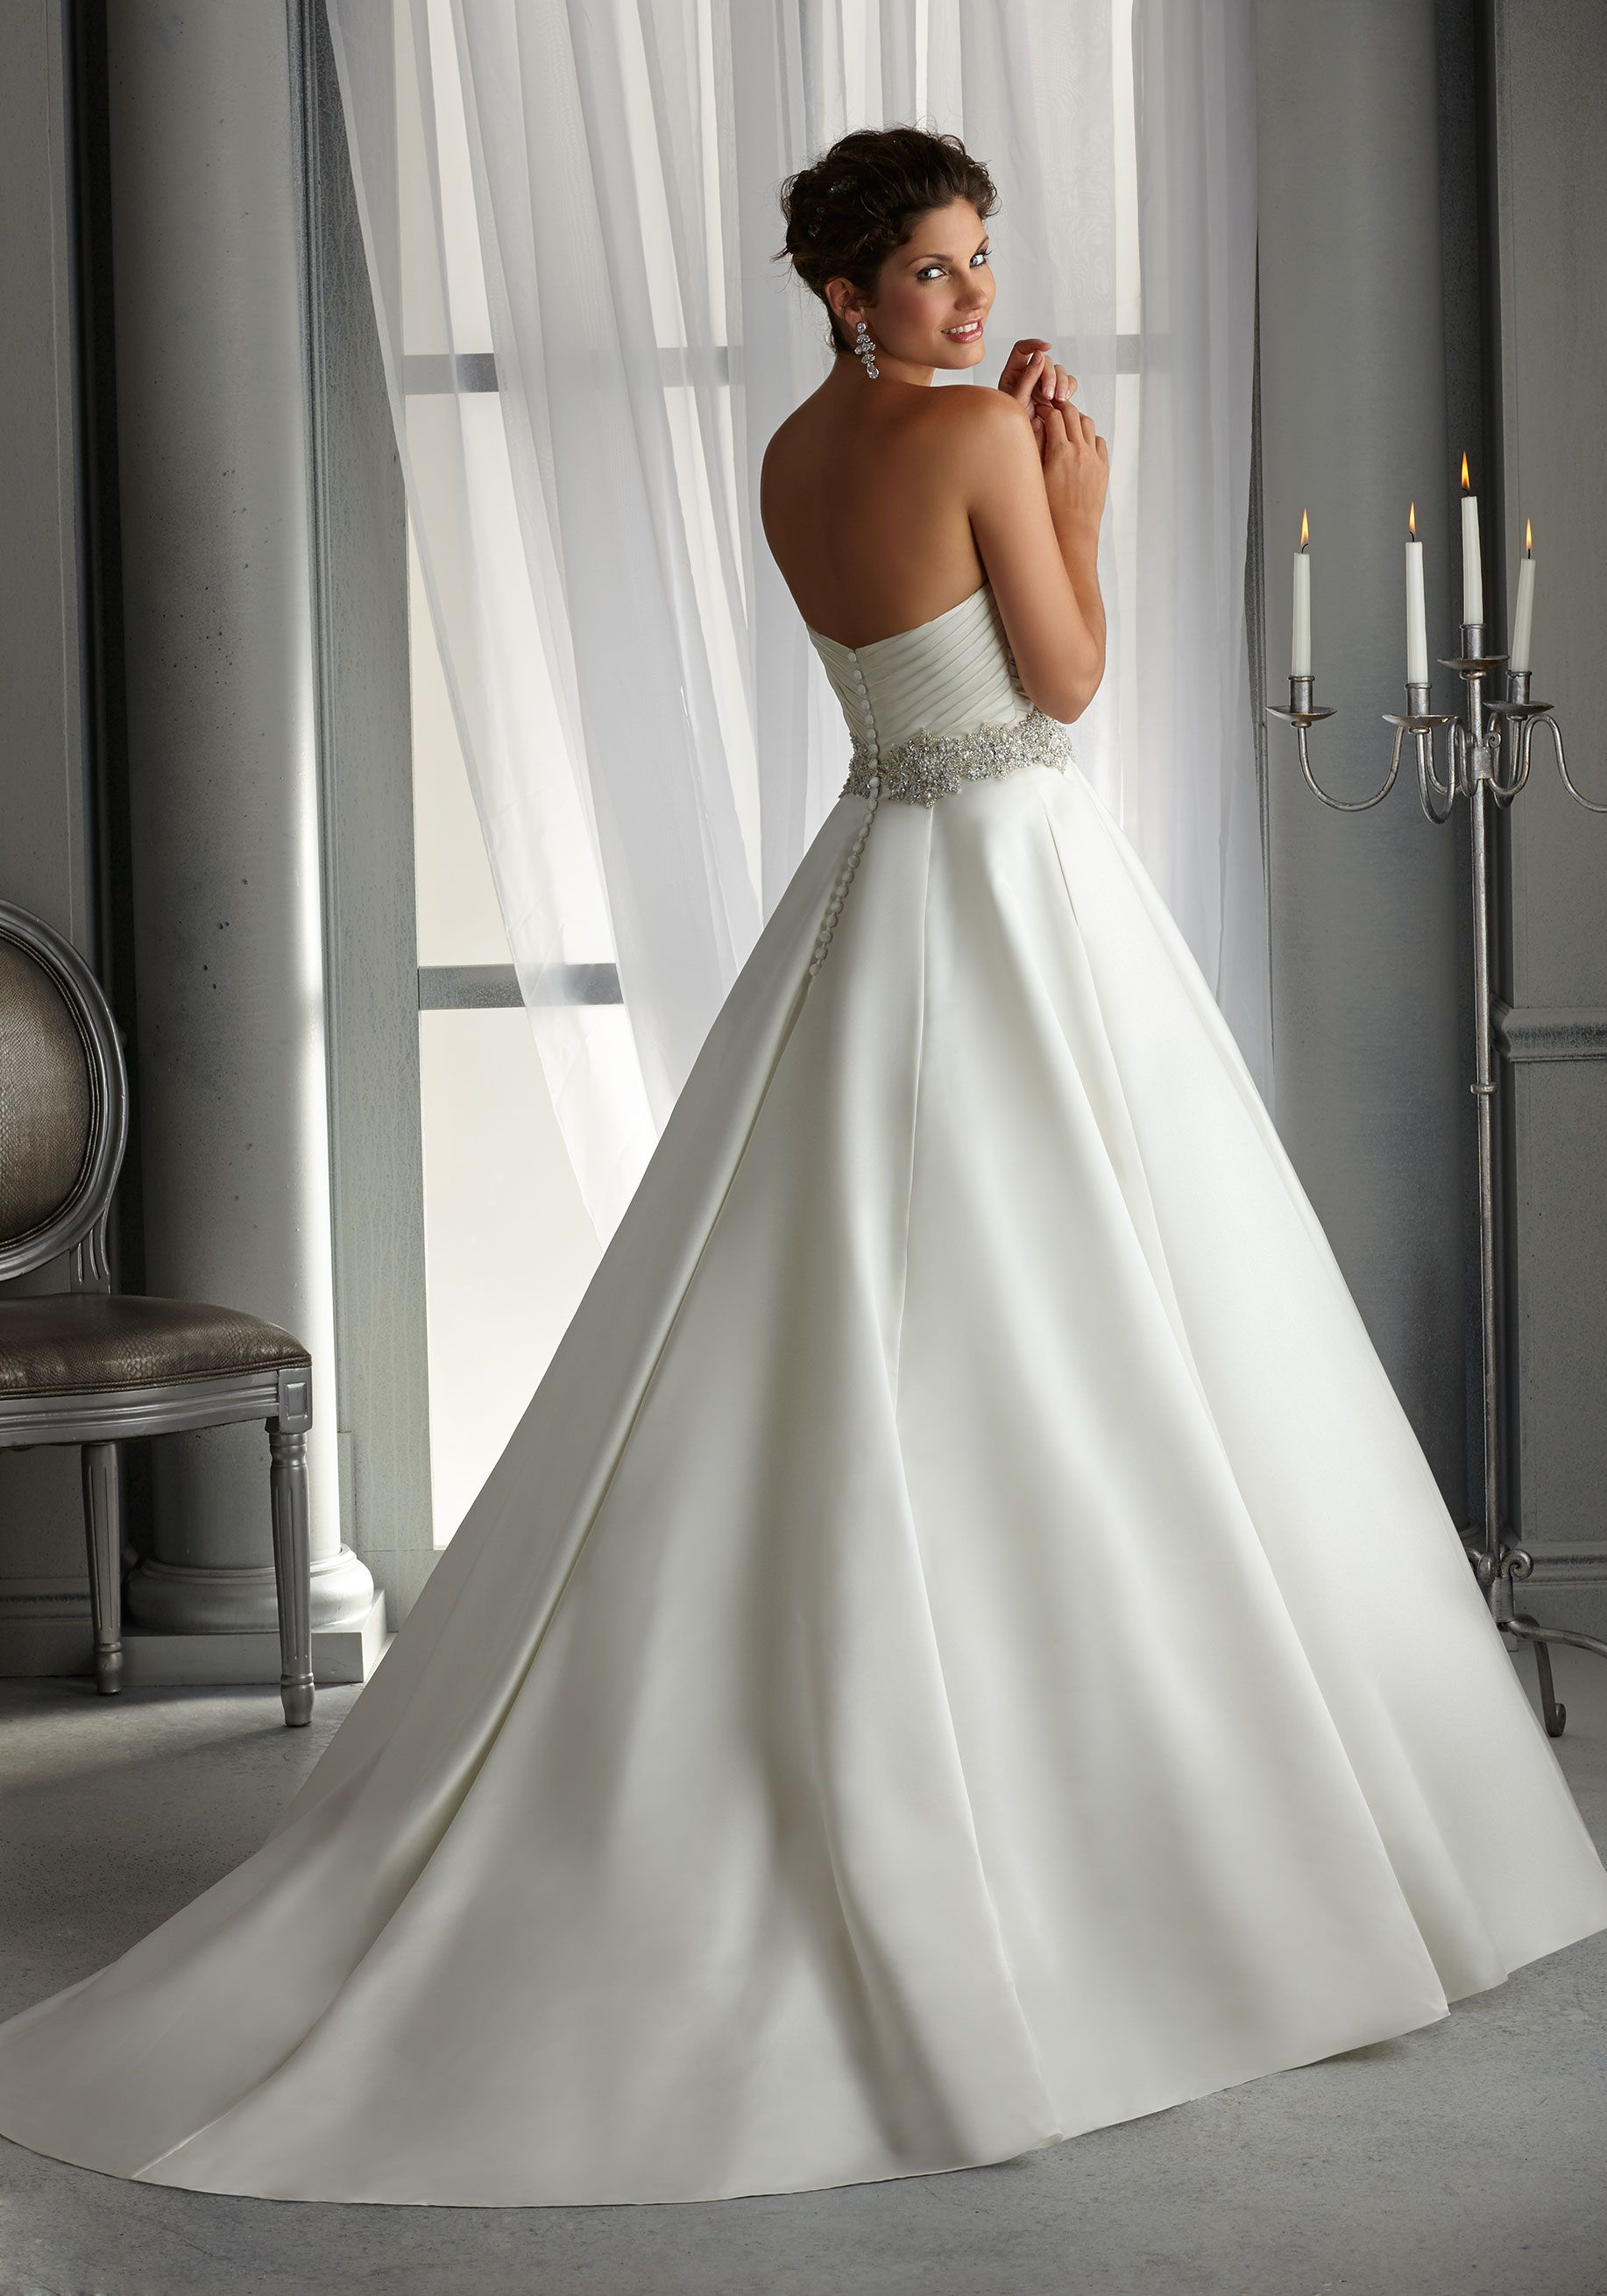 Asymmetrically draped aline style bridal dress a sparkling beaded